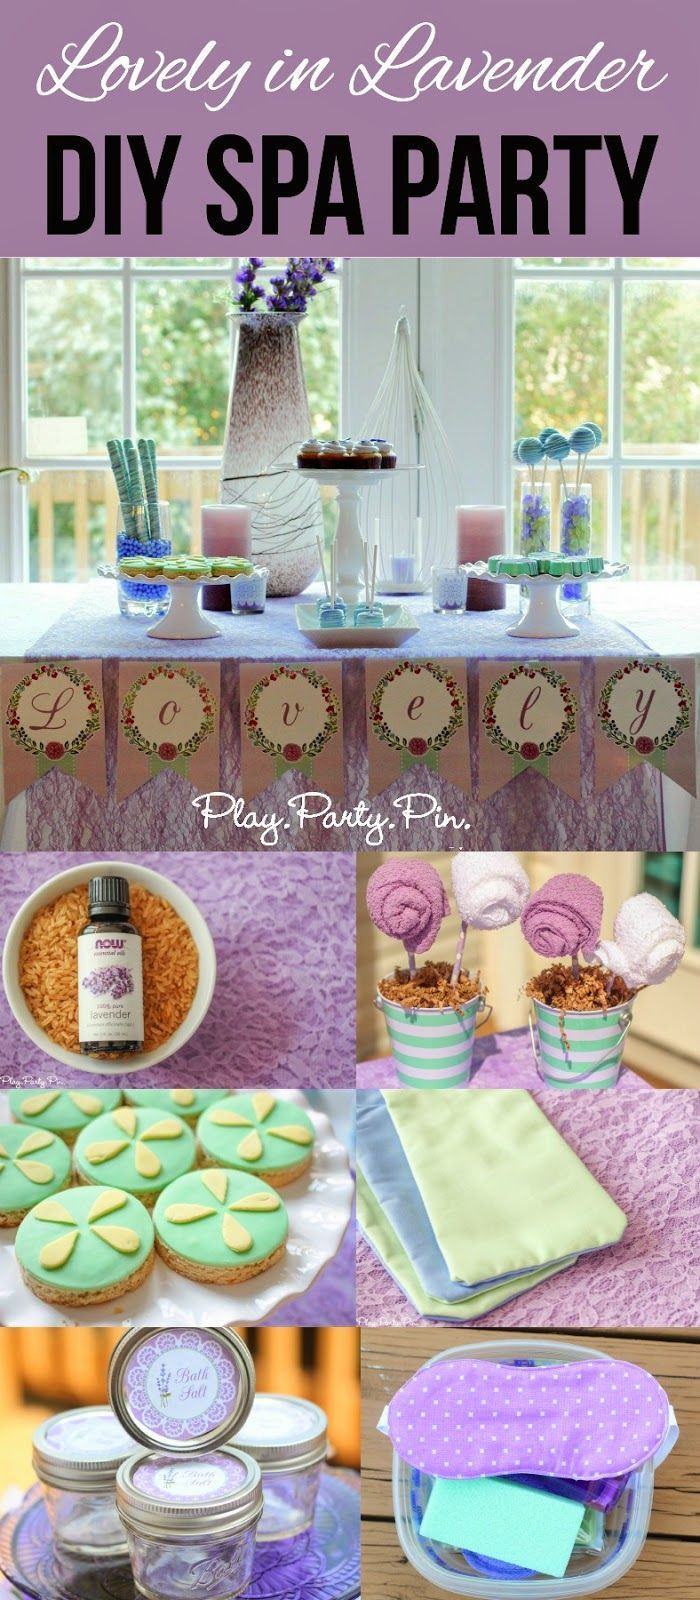 Best ideas about DIY Kids Spa Party . Save or Pin Lovely in Lavender DIY spa party ideas perfect for a Now.